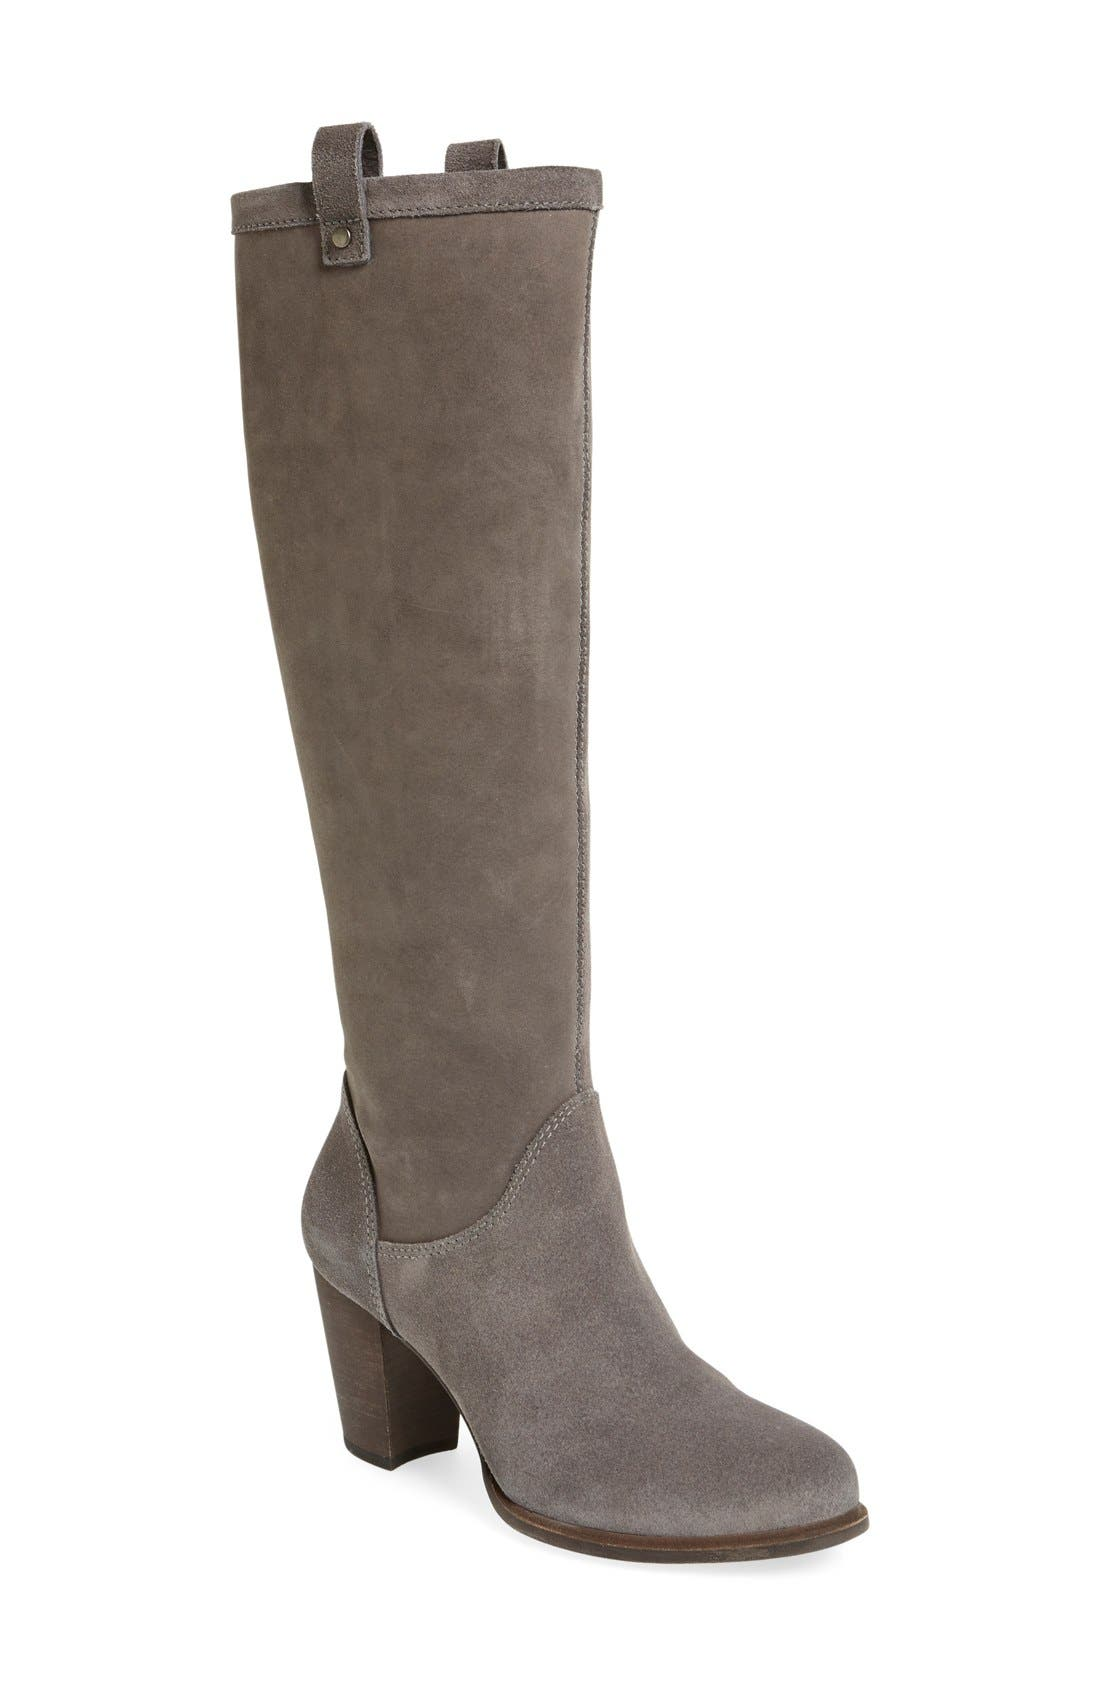 Alternate Image 1 Selected - UGG® 'Ava' Tall Water Resistant Suede Boot (Women)